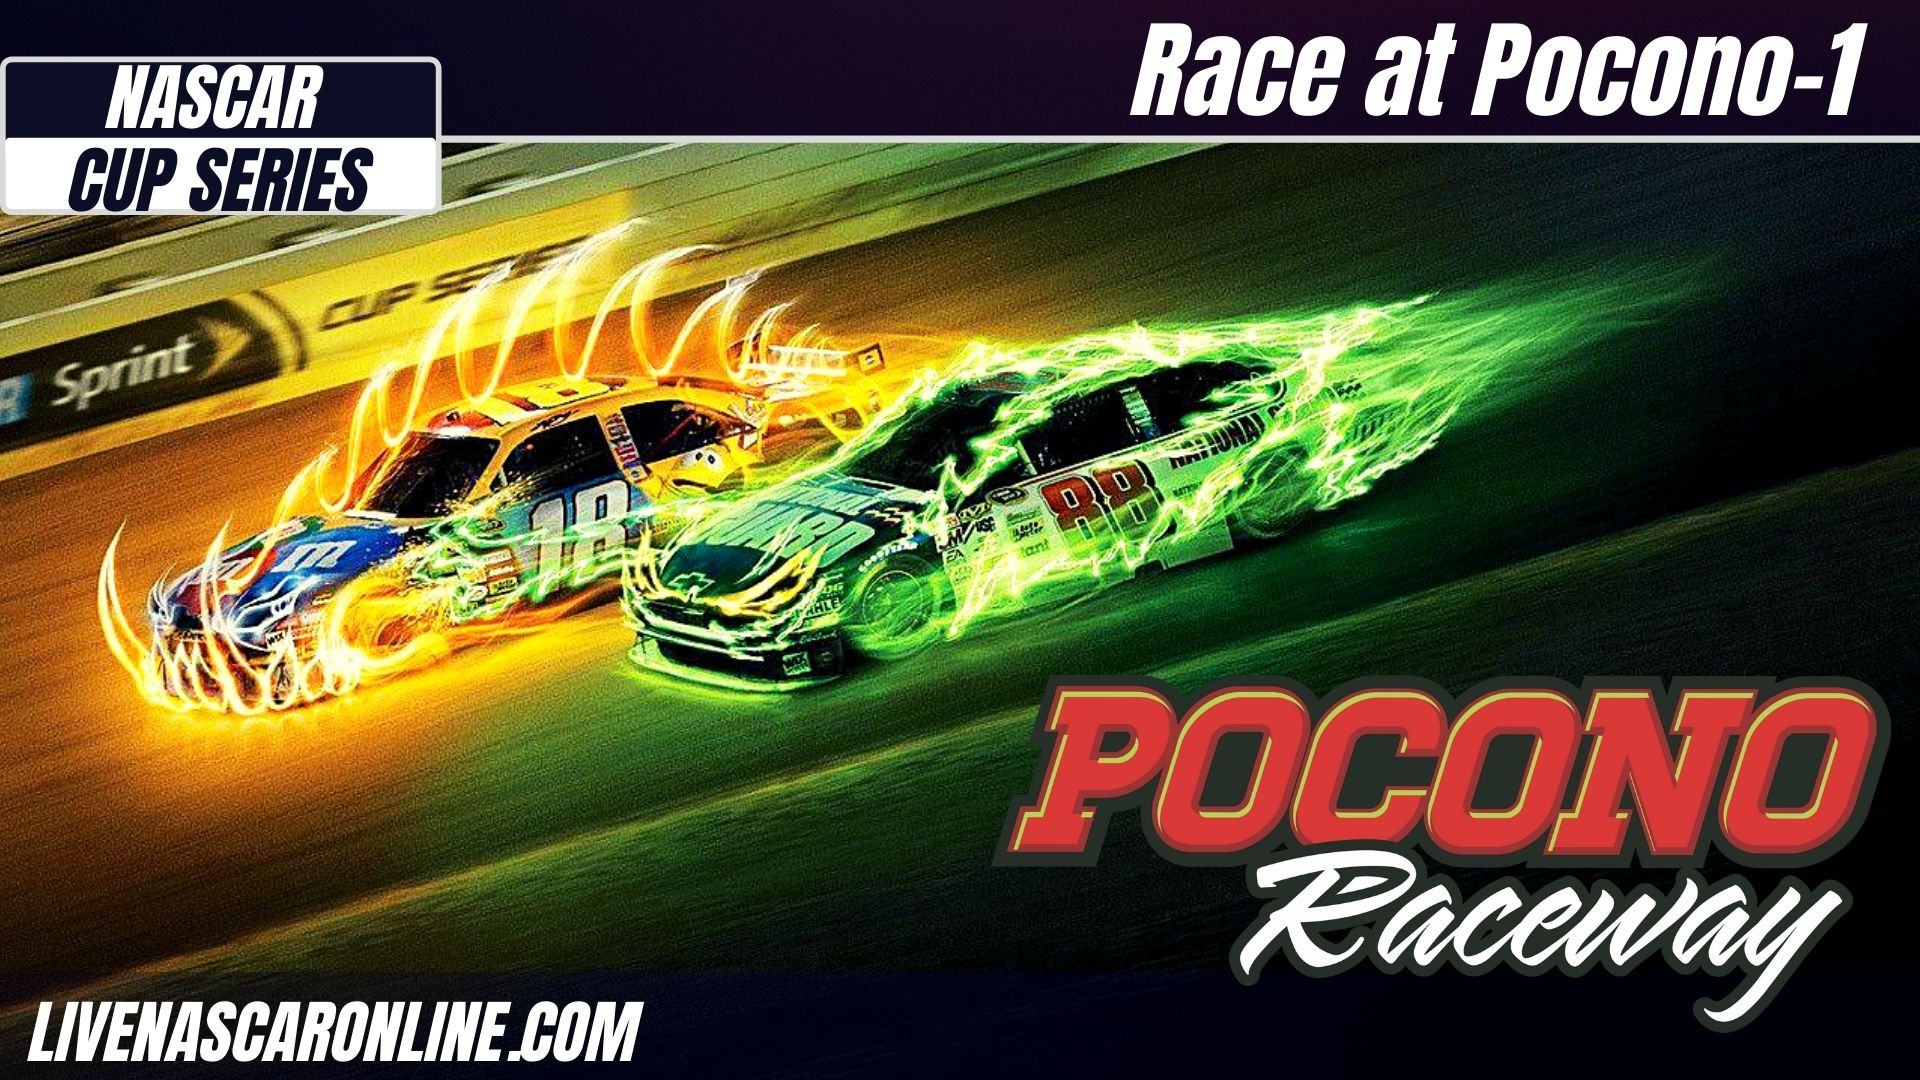 NASCAR Race at Pocono-1 Live Stream 2021